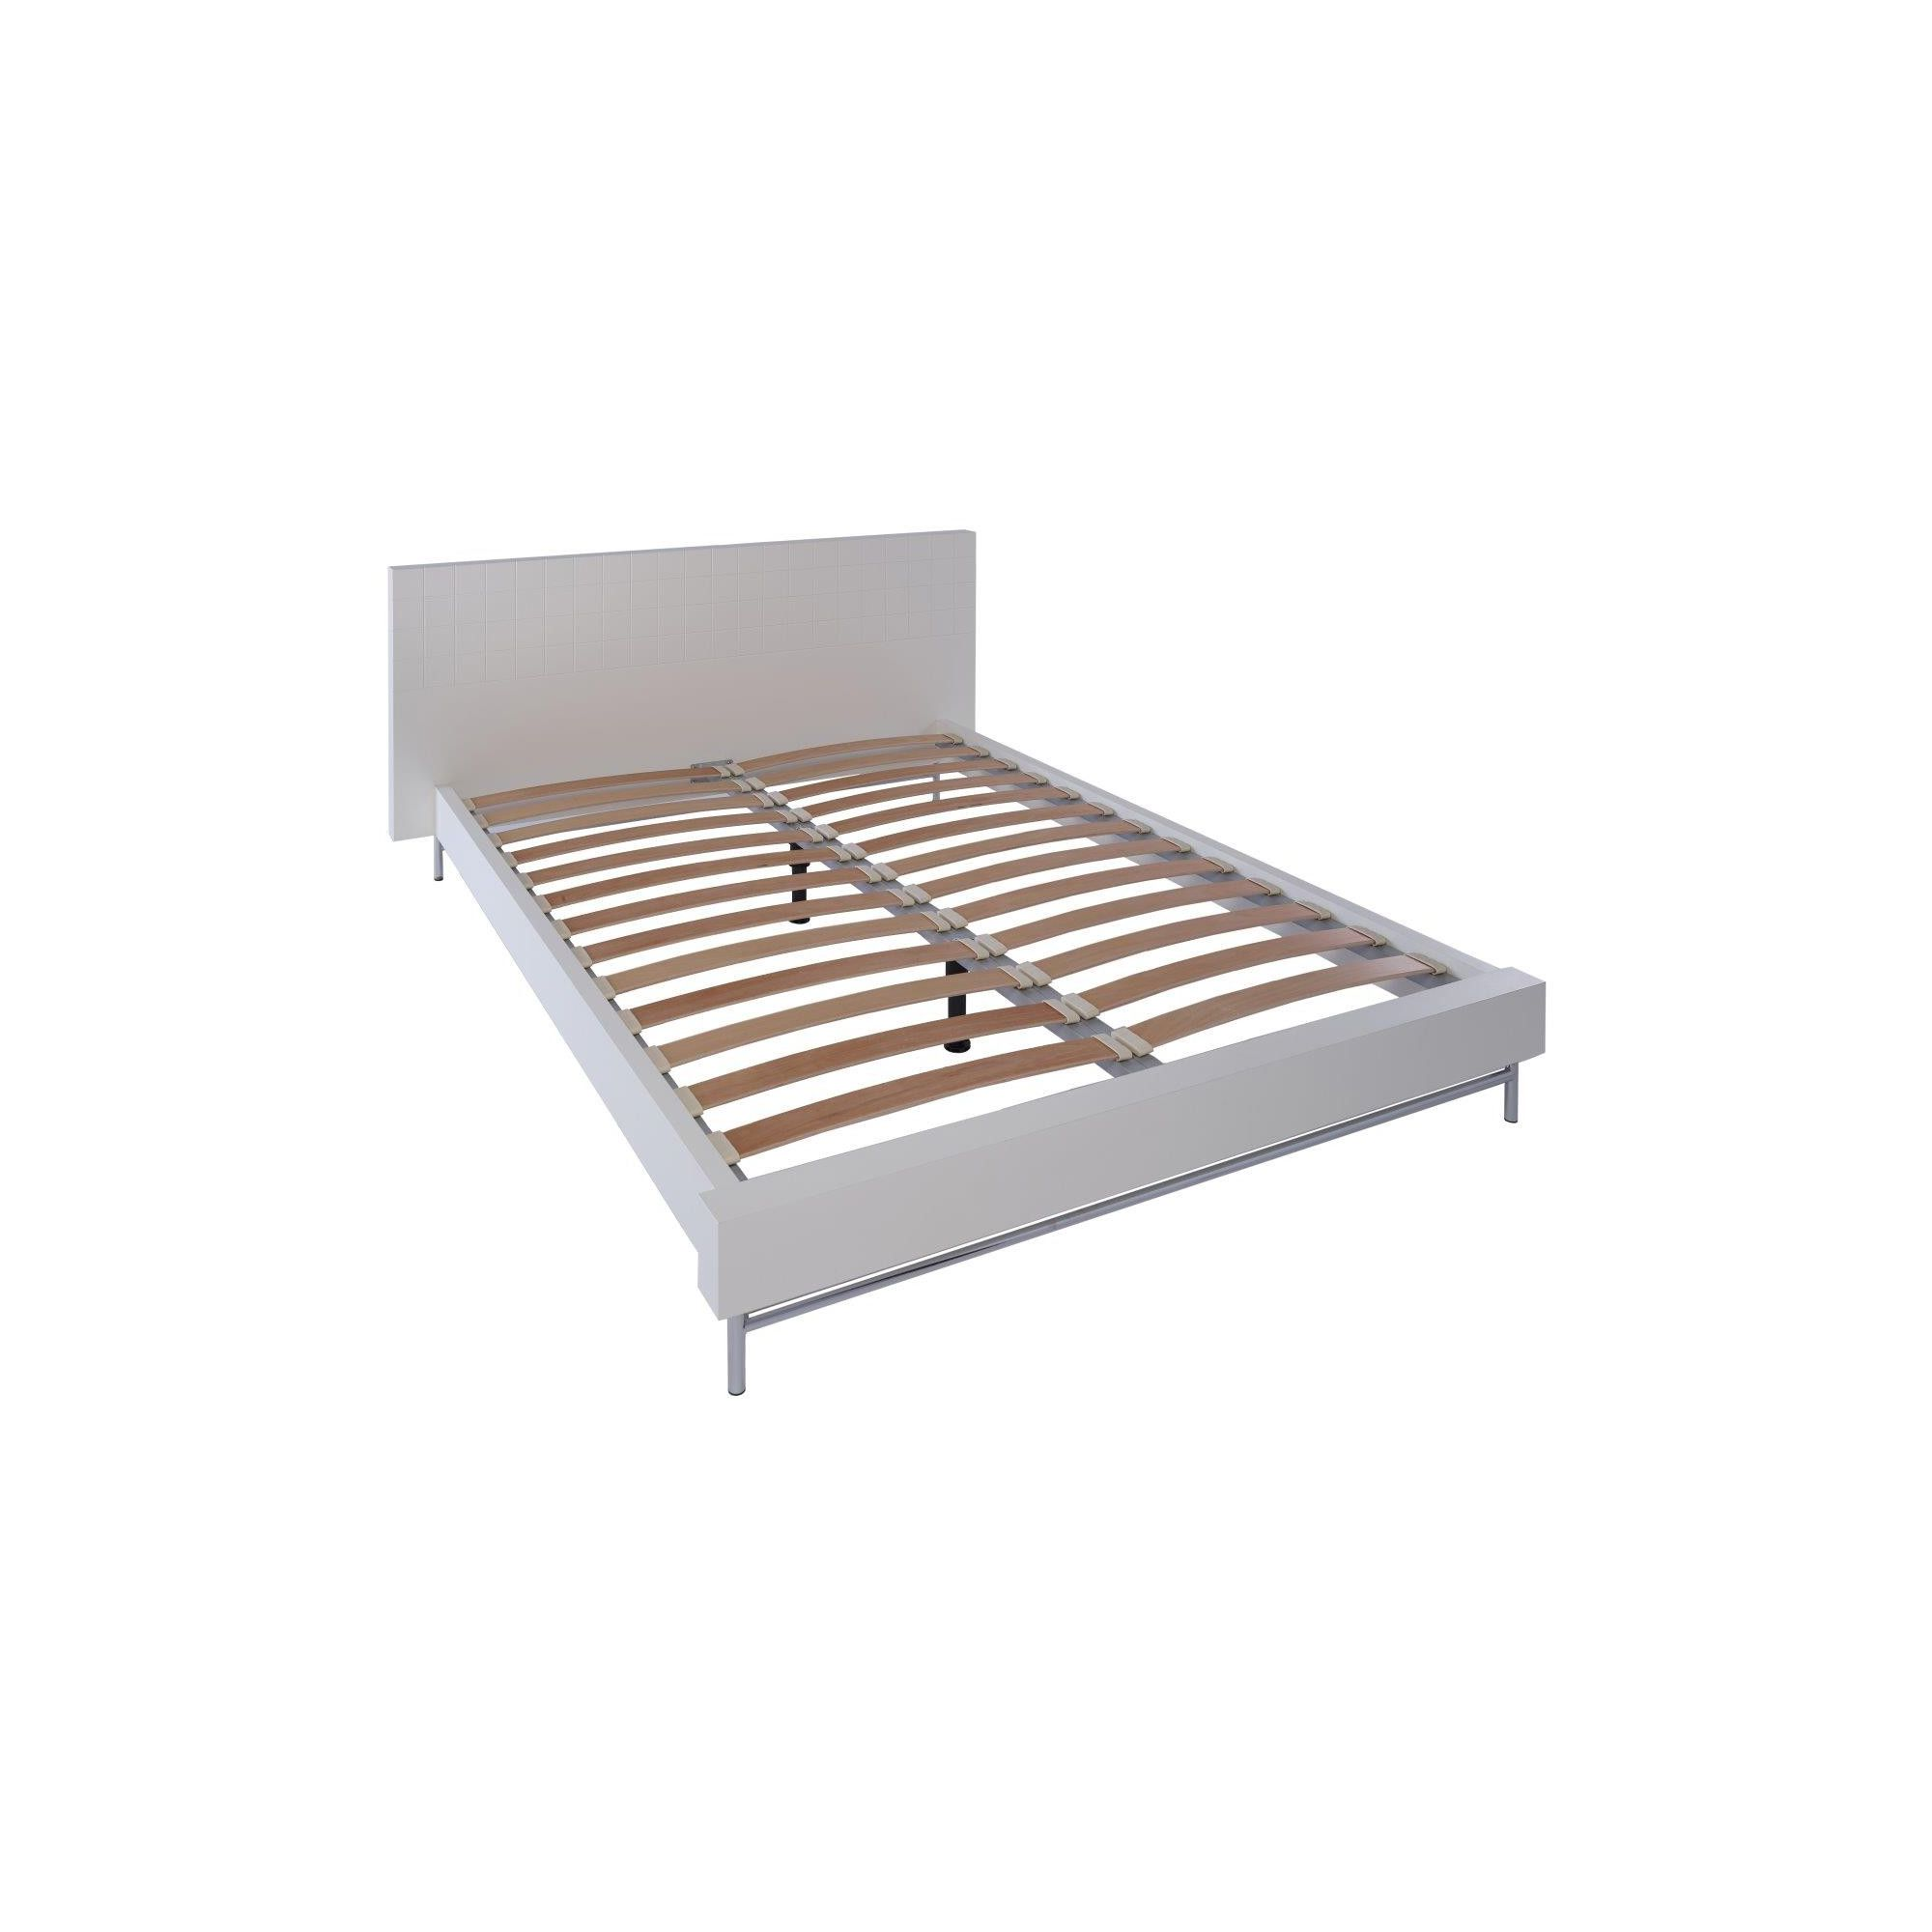 Gillmore Space Barcelona Bed - King - Walnut at Tesco Direct